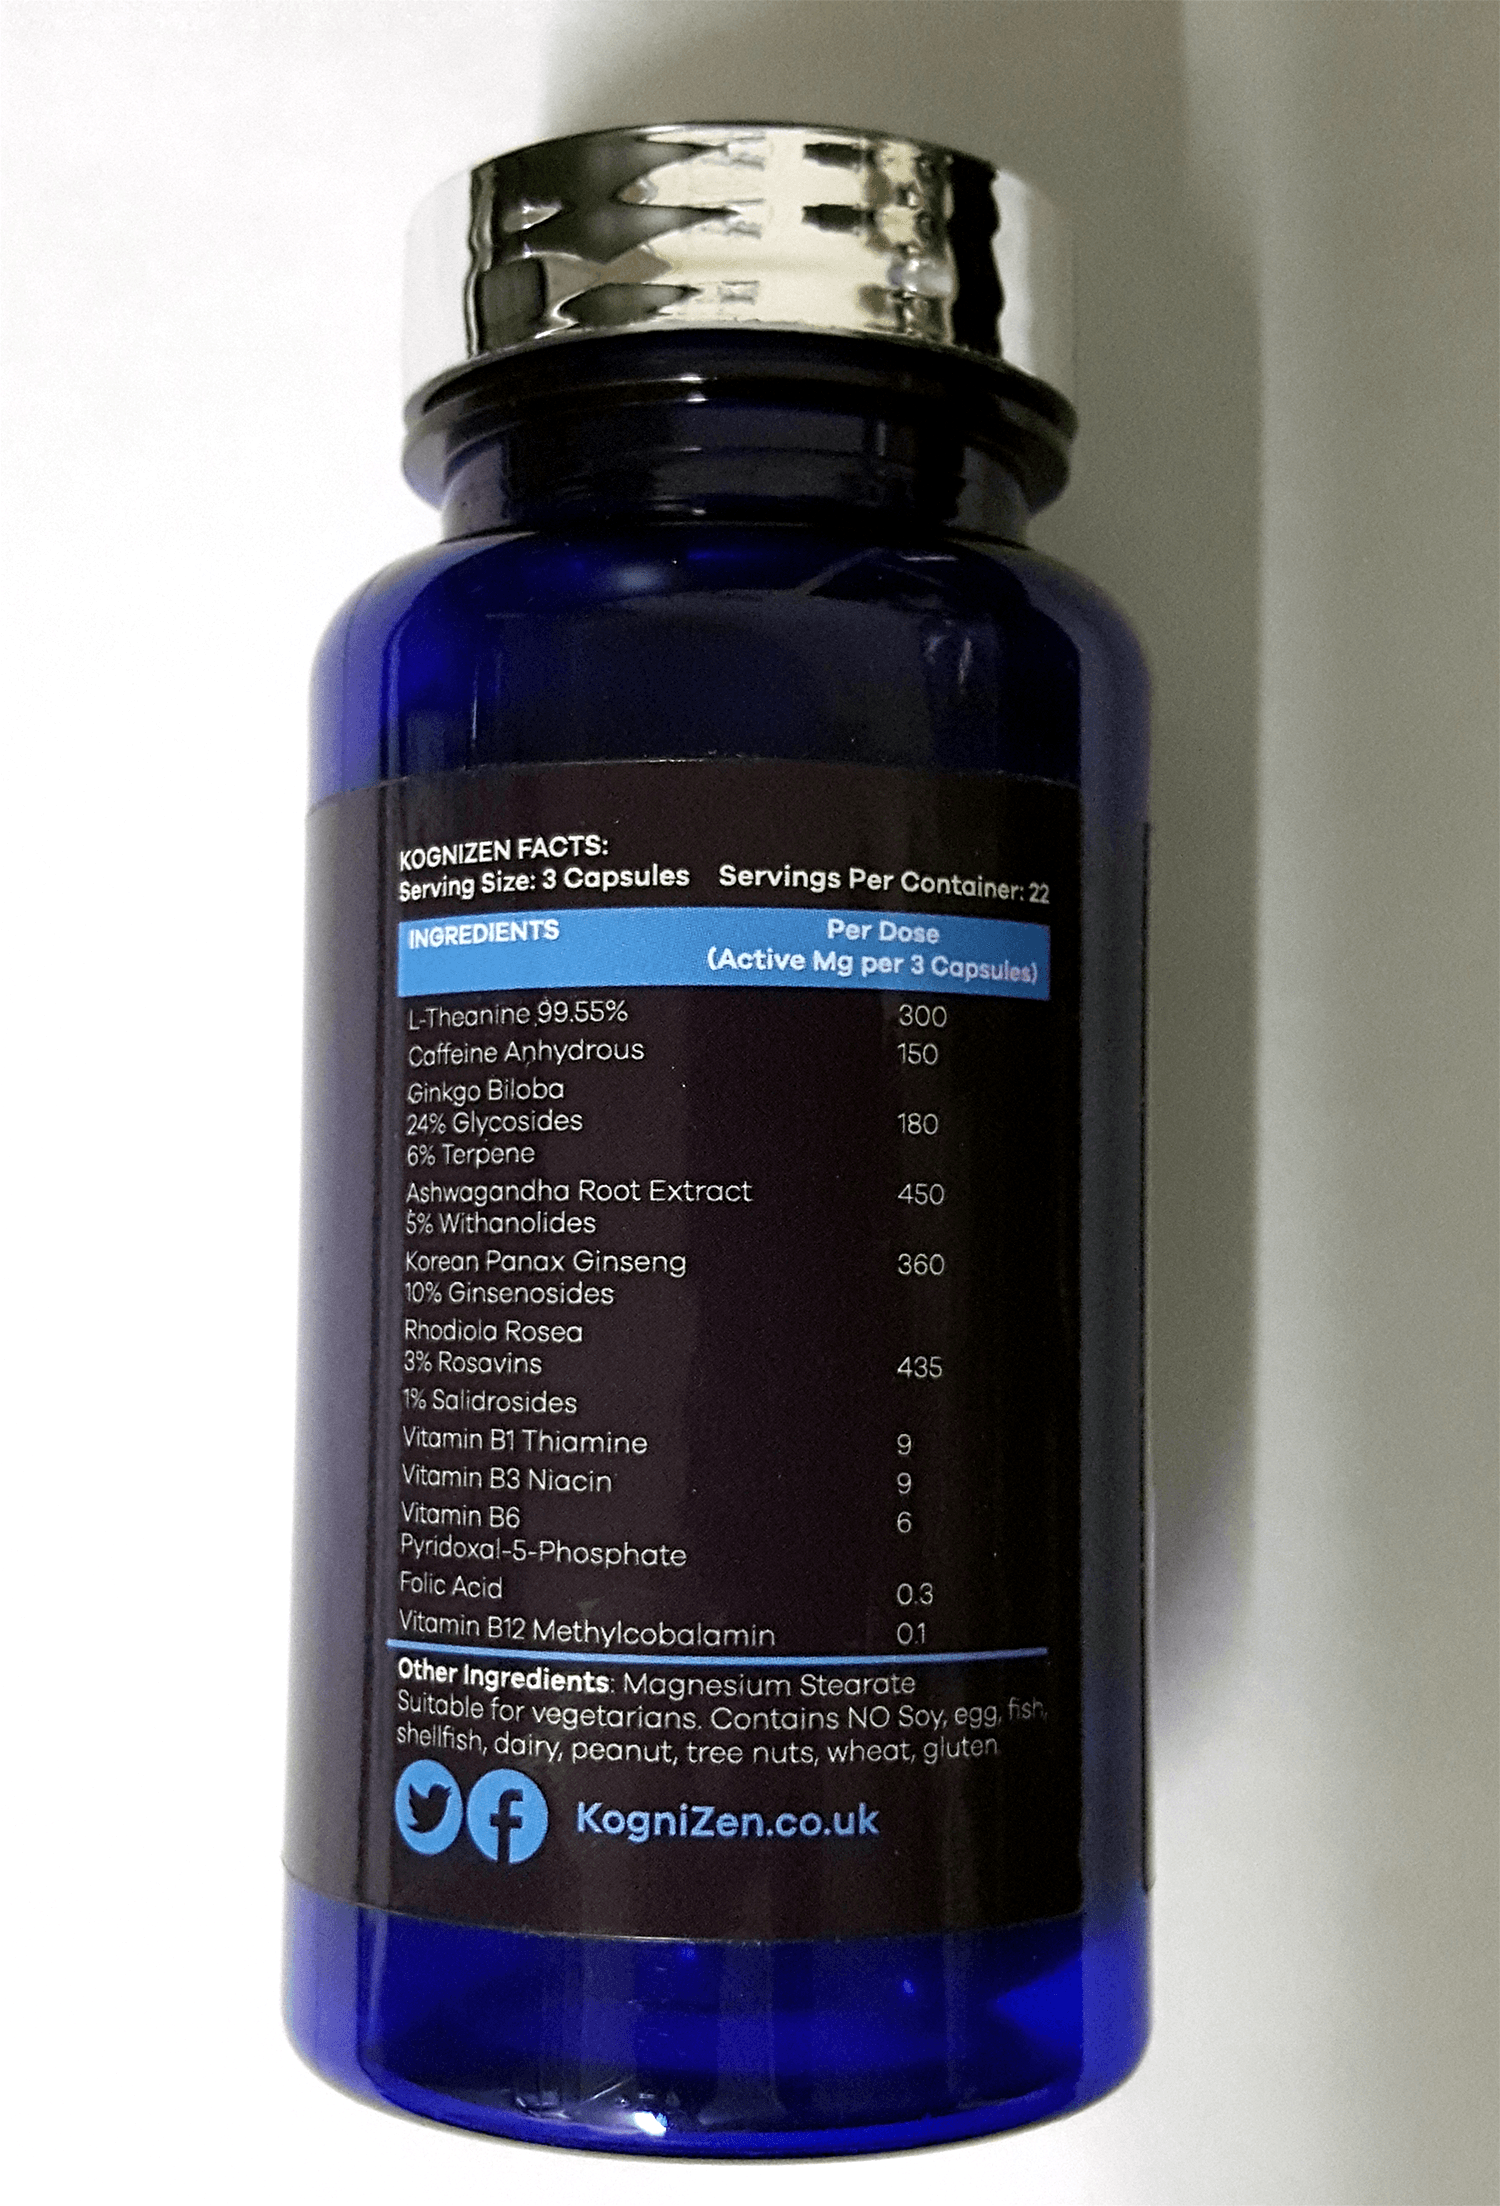 Ingredients listed on the KogniZen bottle